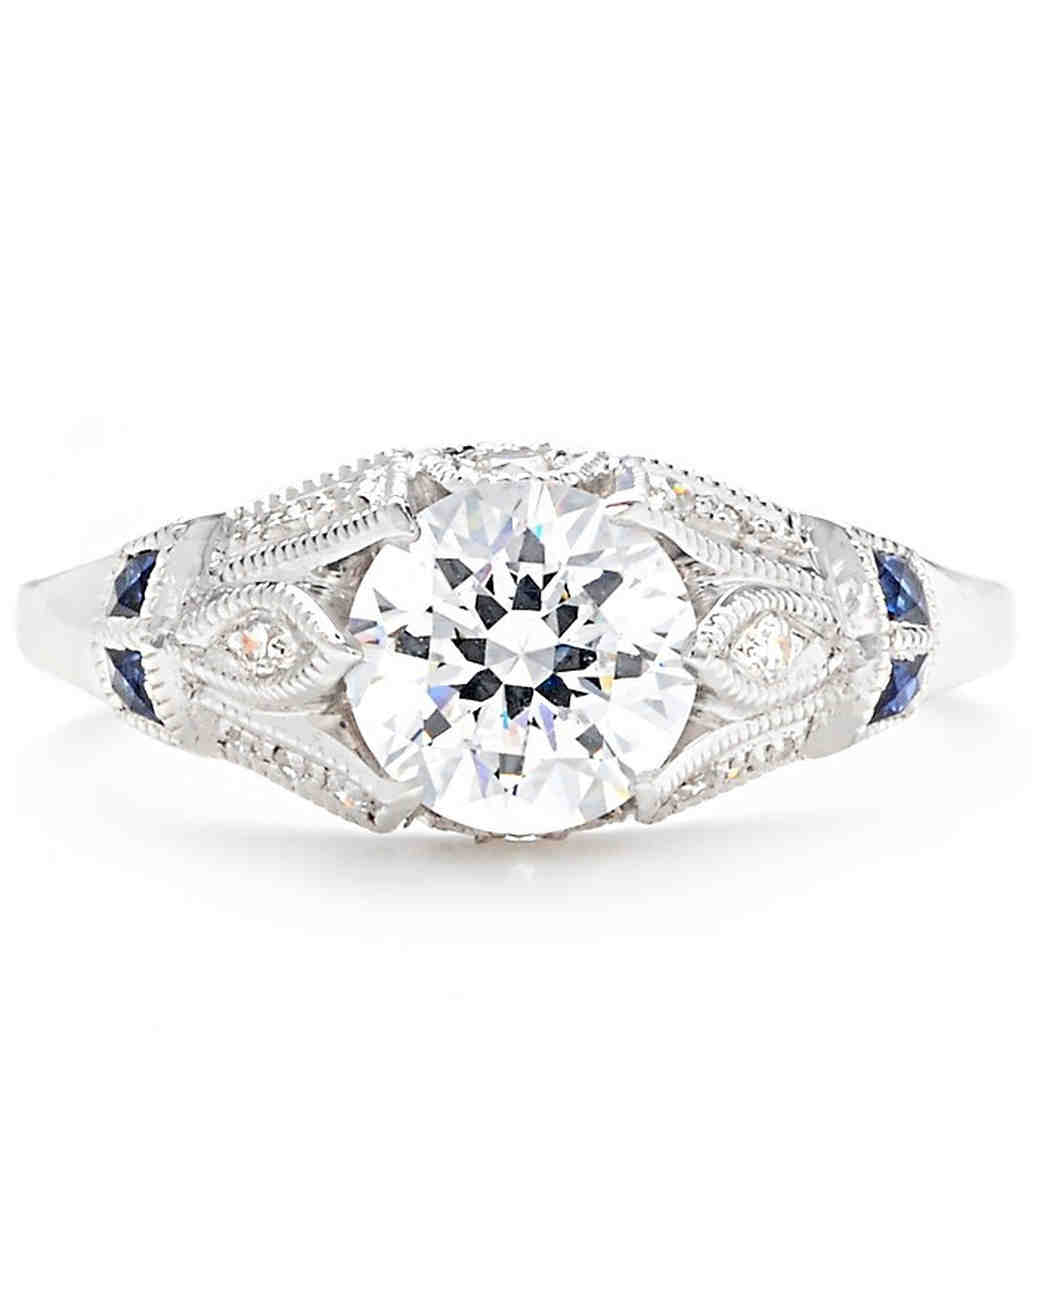 47 stunning vintage engagement rings | martha stewart weddings